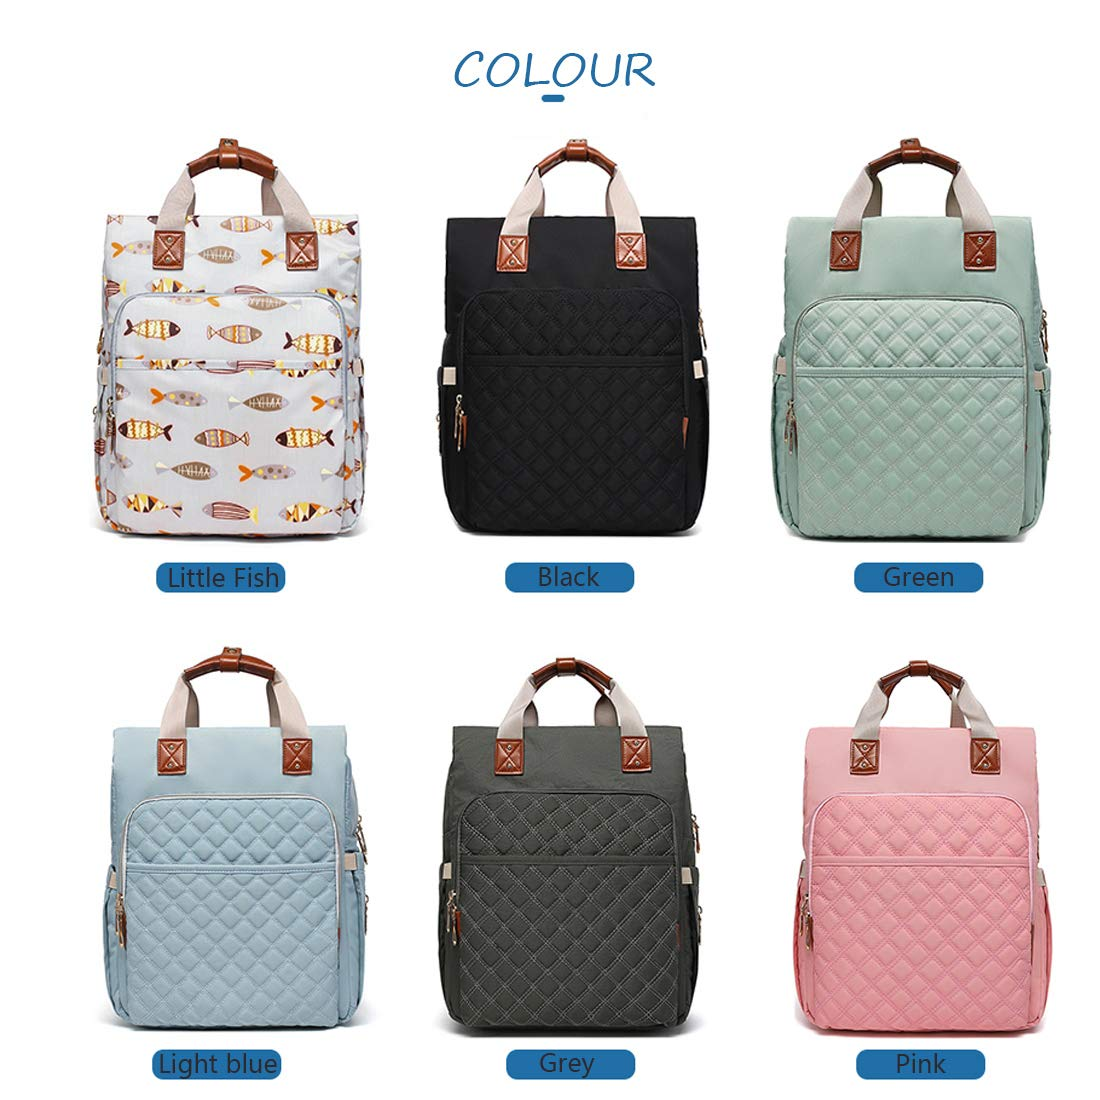 Stylish and Fashion Modern for Dad /& Mom 2019 Upgrade BRIGHTSHOW Diaper Bag Backpack Large Capacity Multi-Function Waterproof Travel Backpacks Organizer Bags for Baby Boy Girl Care